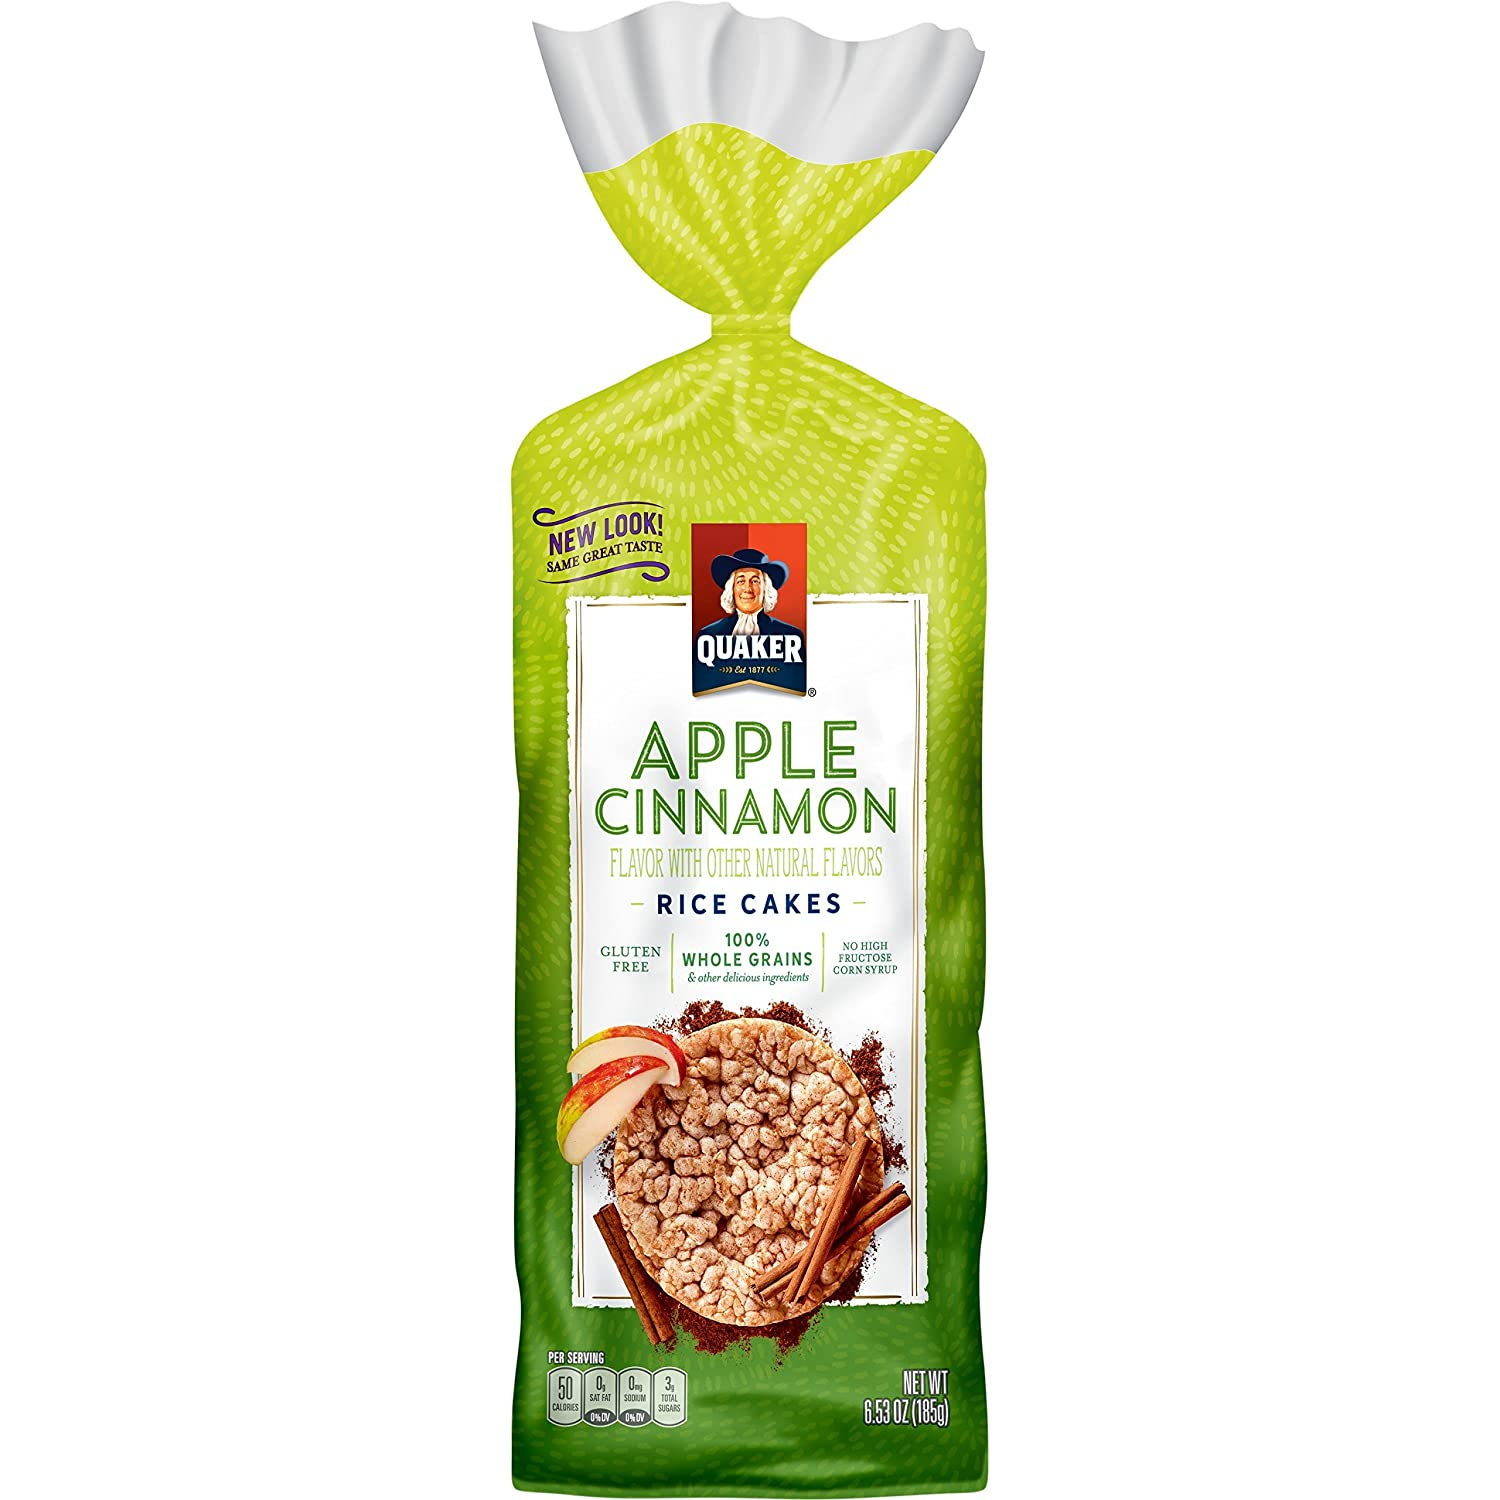 Quaker Rice Cake, Apple Cinnamon, 6.53 oz Bag